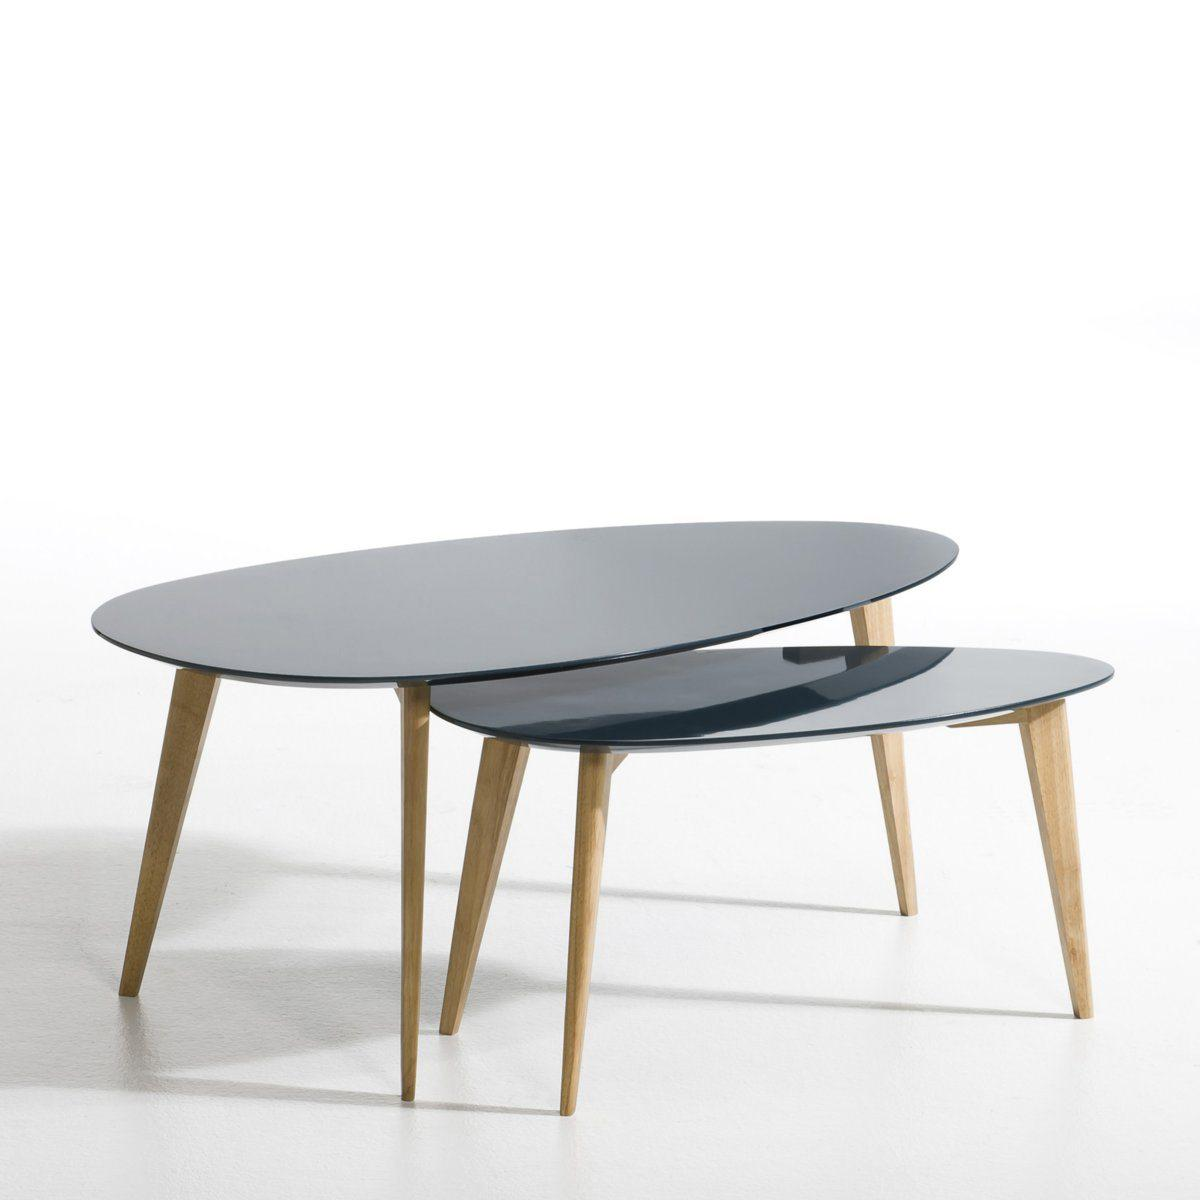 D co le design scandinave madame figaro for Table de salon gigogne